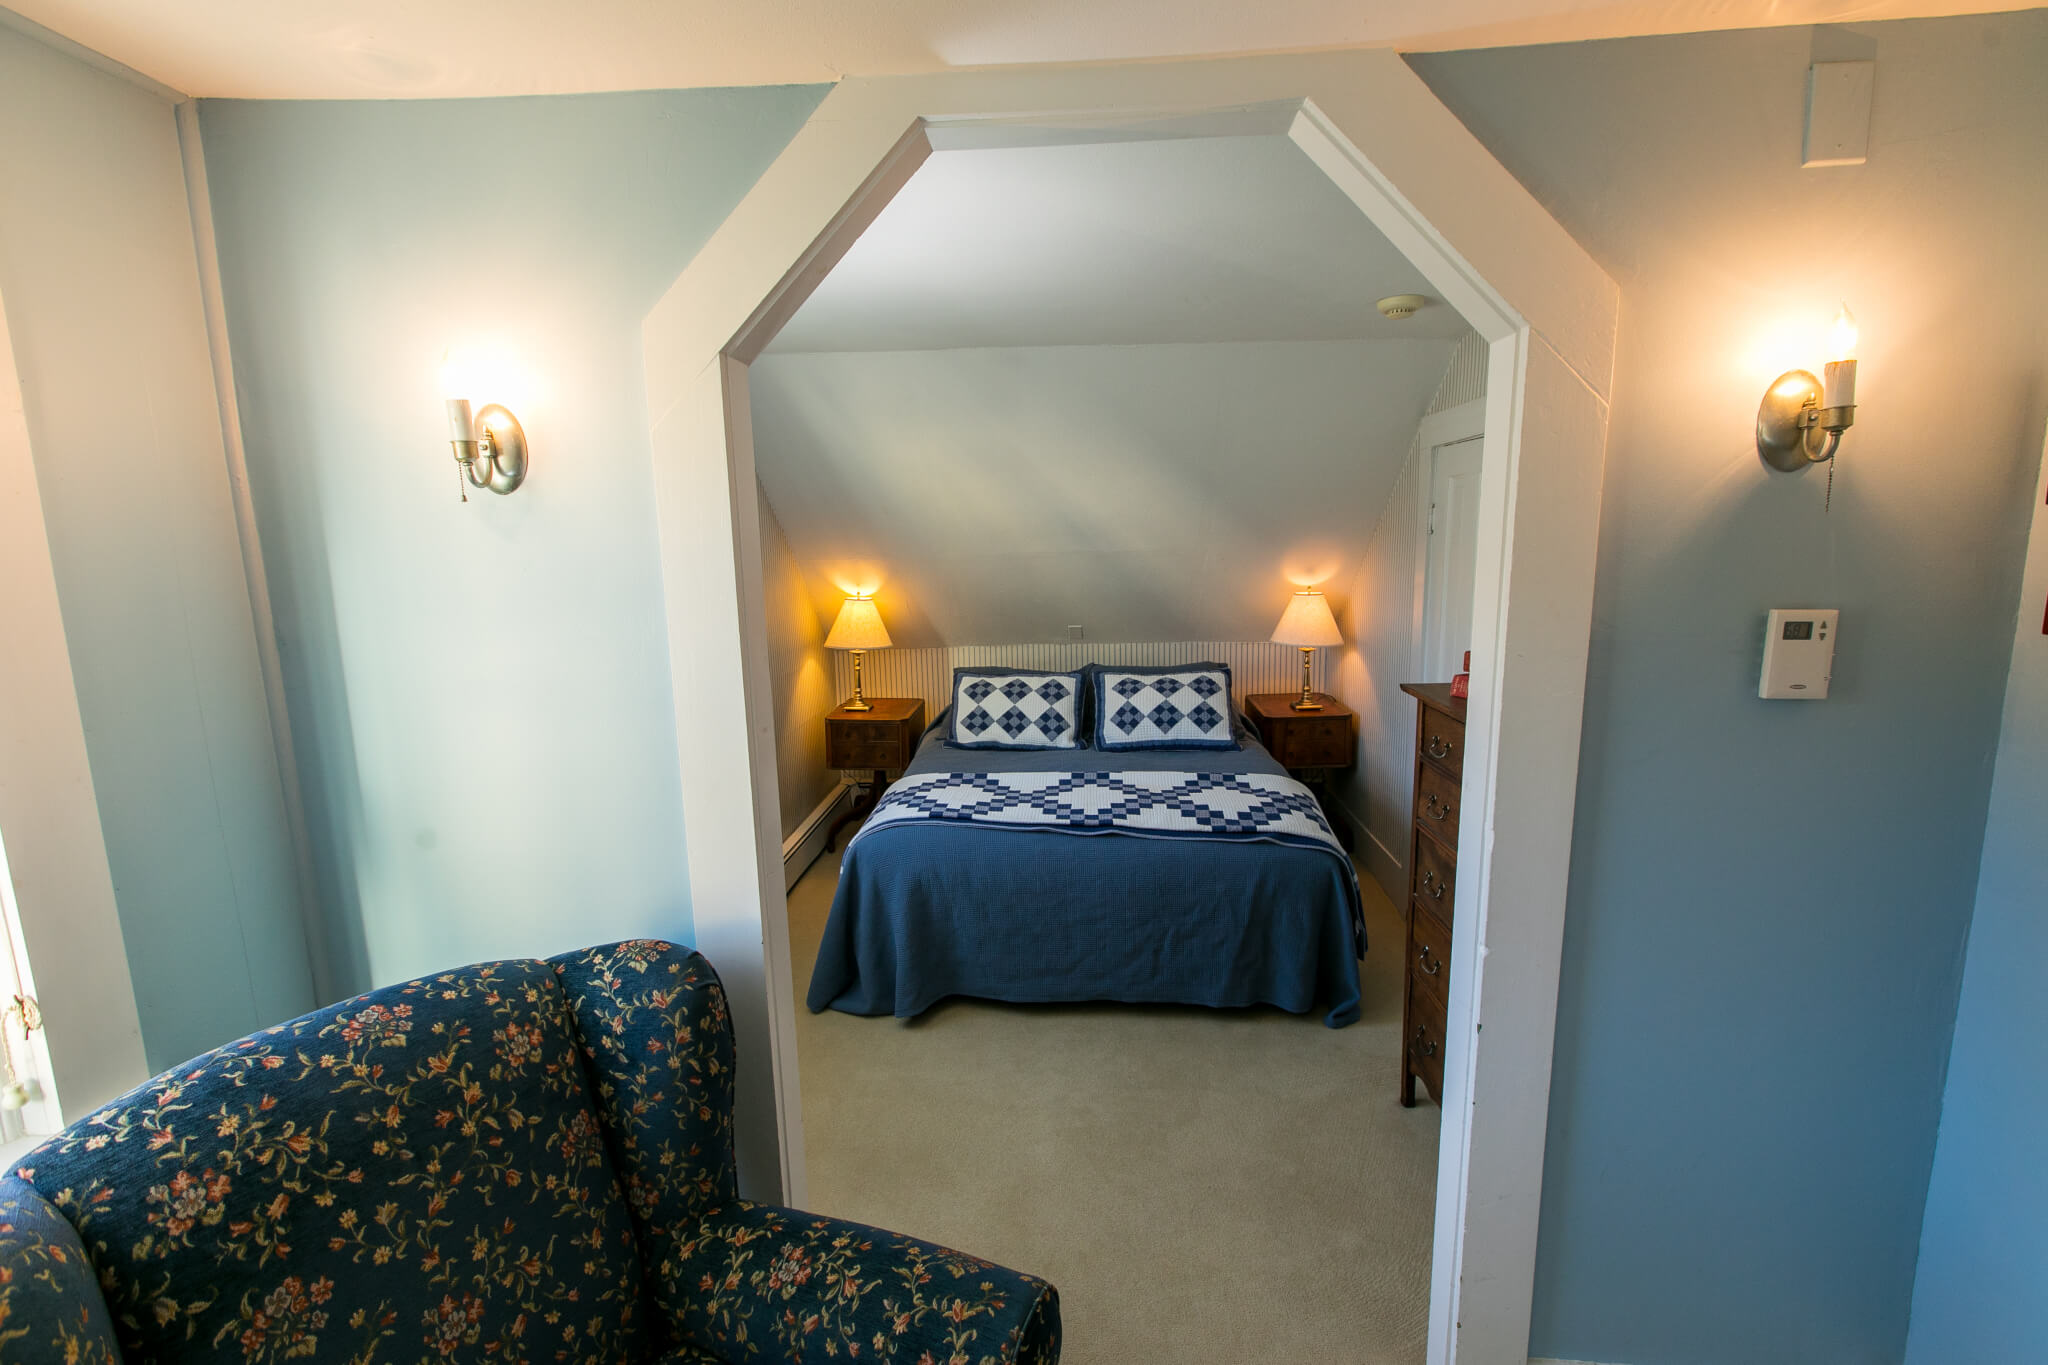 Sleeping alcove with two bedside tables and lamps. Dresser and closet next to bed.